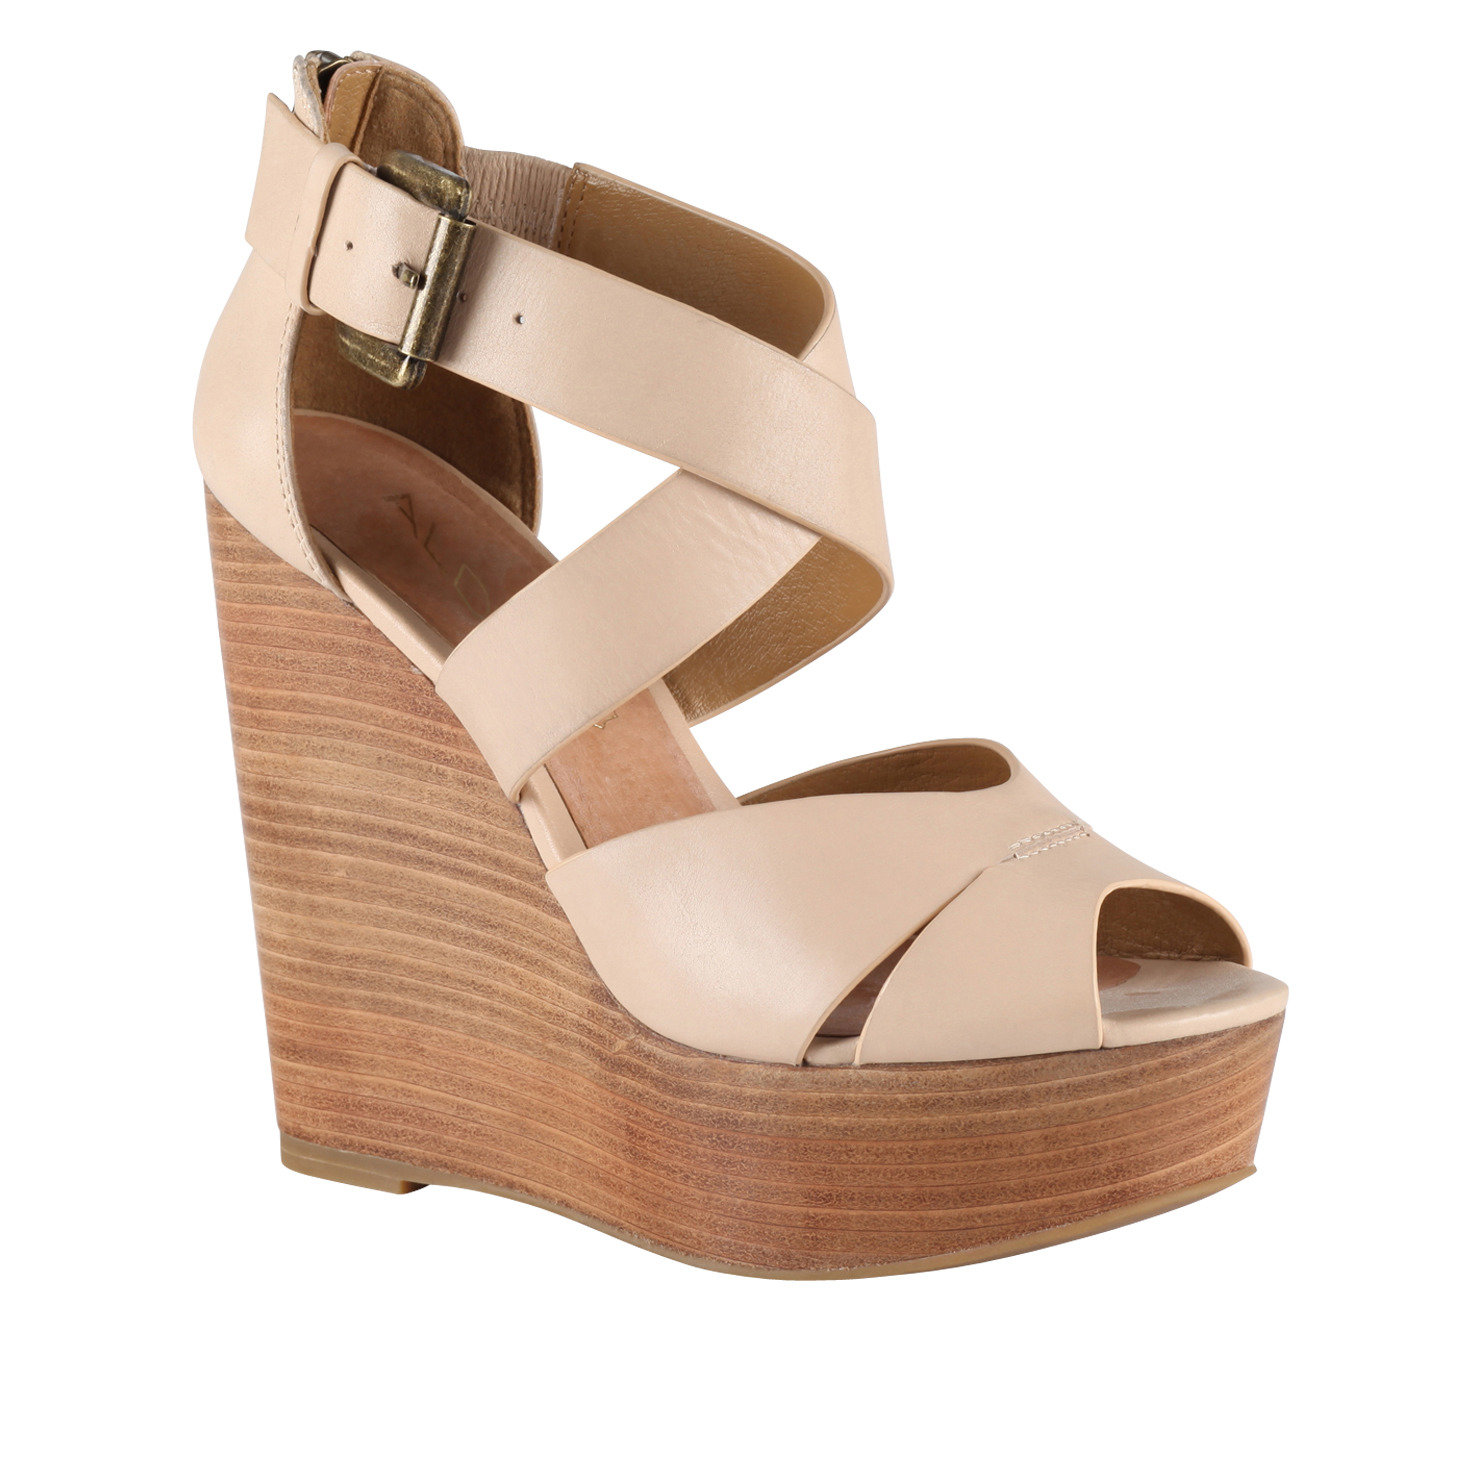 TUMOA - women's wedges sandals for sale from ALDO | Epic ...